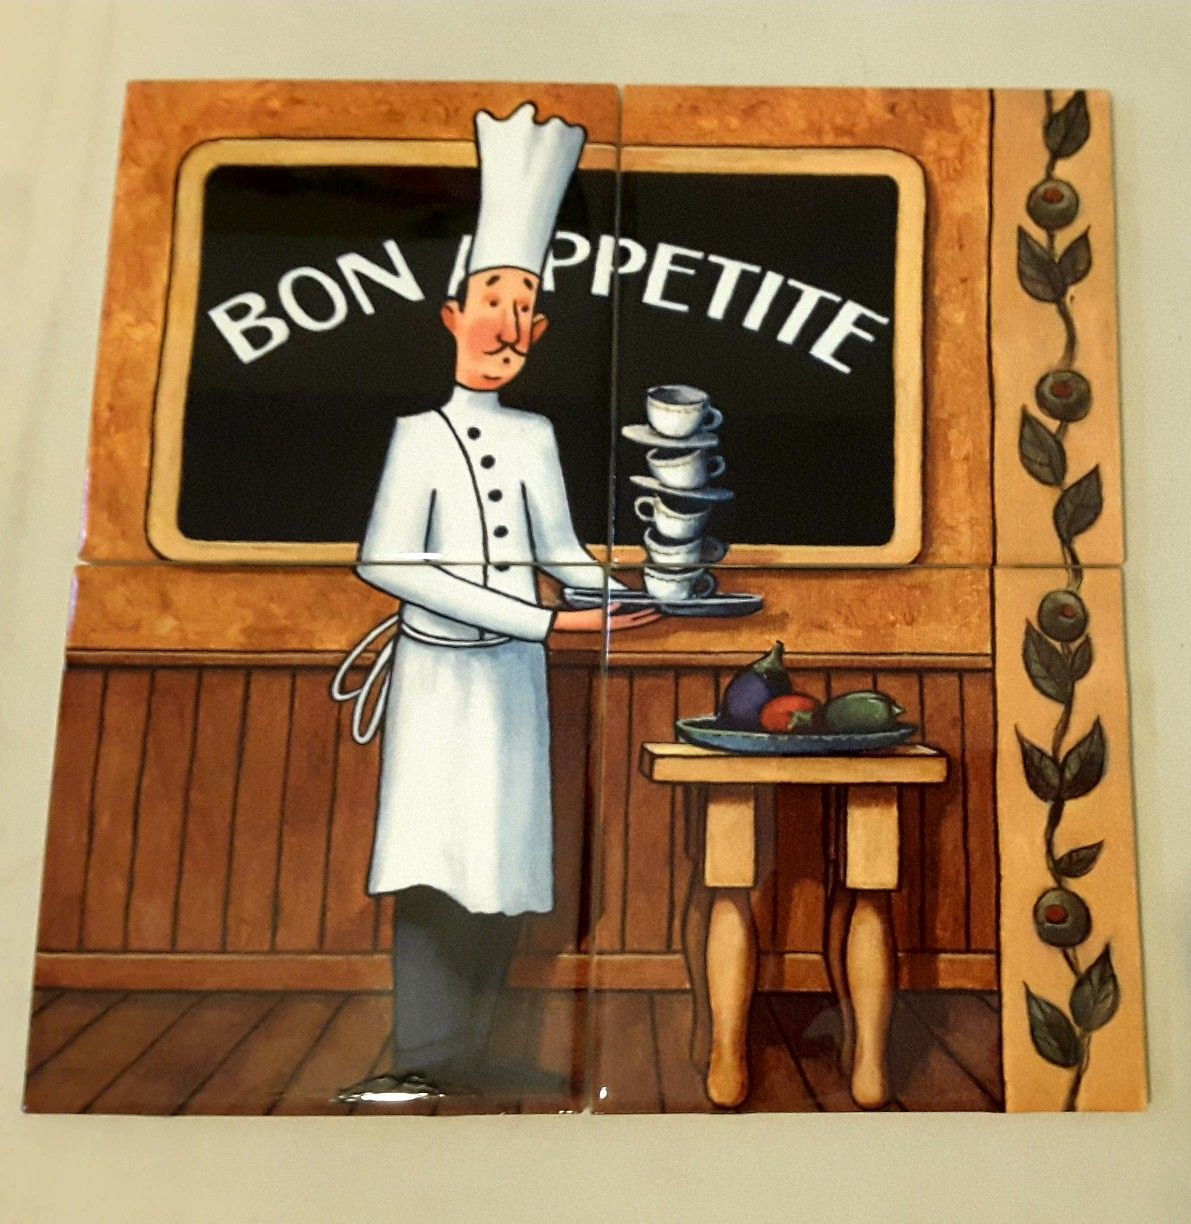 Bog Appetite Tile Mural On 15 2cm Tiles At 64 Wwwtilemuralstore Co Uk Tilemurals Kitchentiles Chefs Bistro Cafes Tile Murals Wall Art Decorative Tile